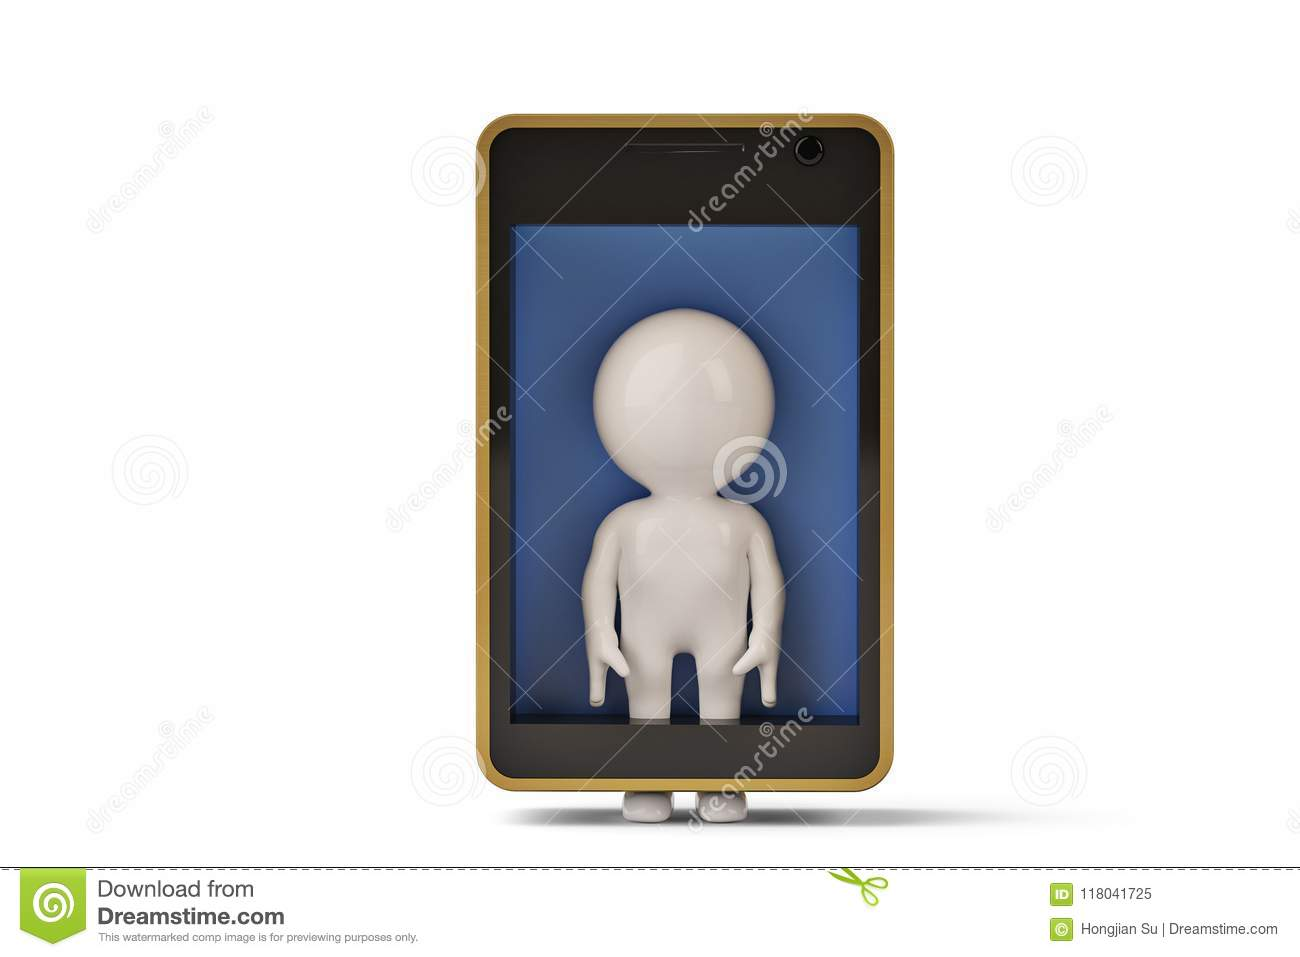 A little human character in mobile phone.3D illustration.